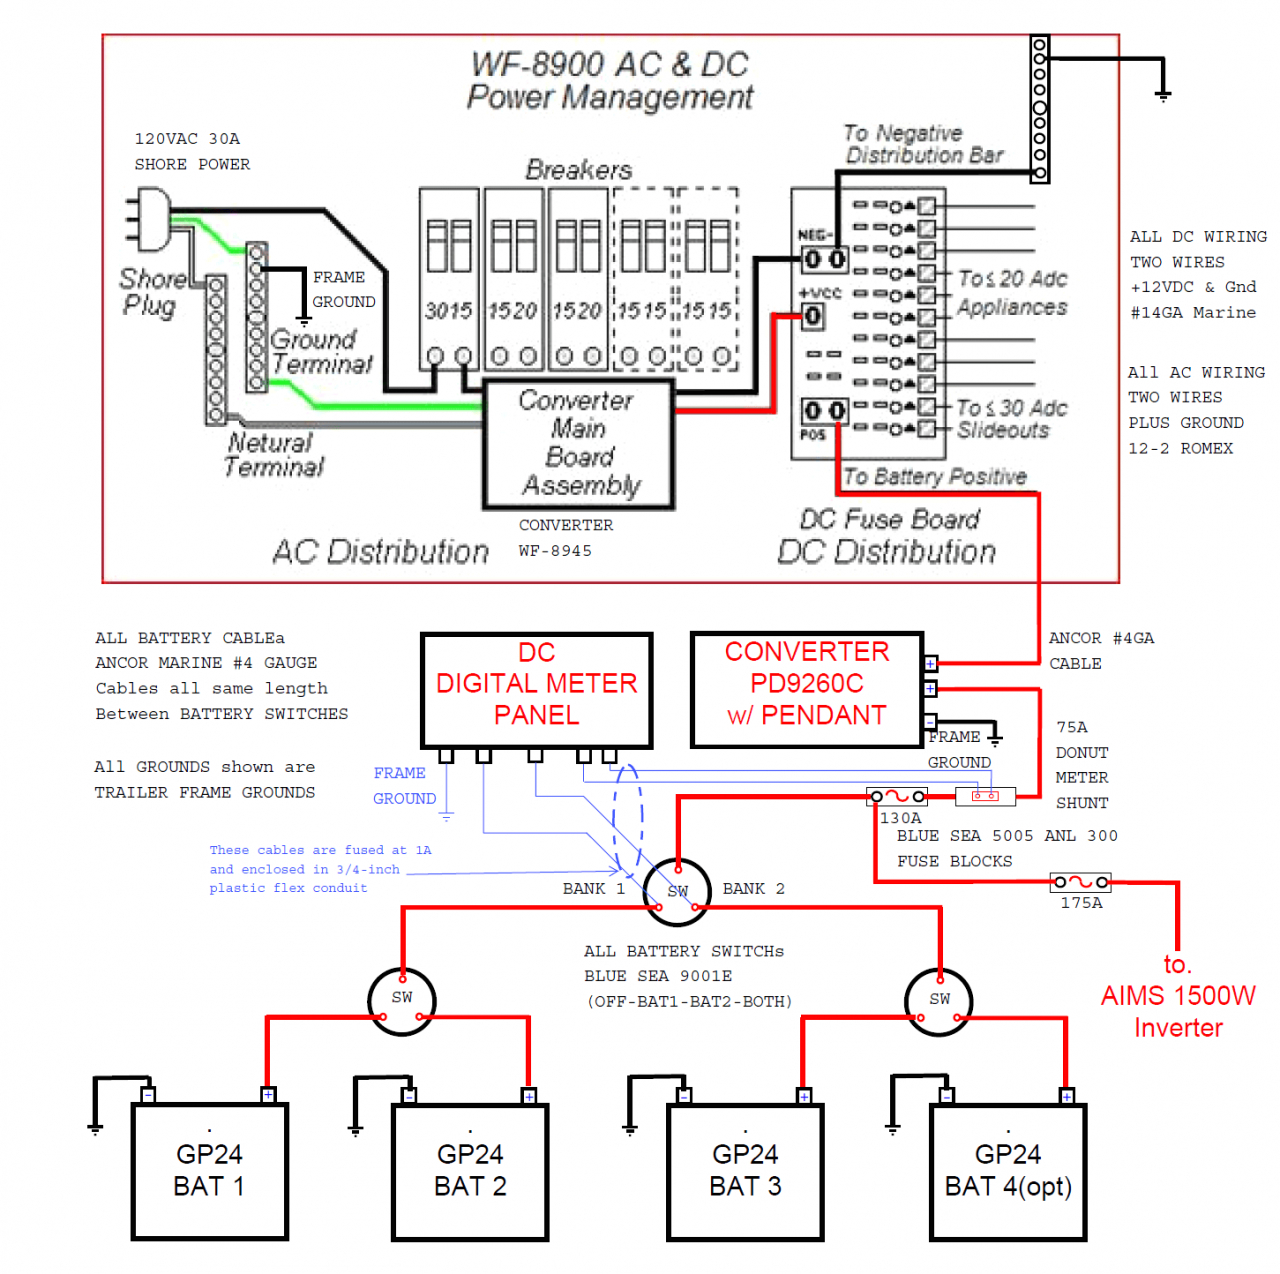 marine inverter charger wiring diagram Download-Marine Inverter Charger Wiring Diagram Luxury Dual Battery Wiringagram System Boat Car Audio 4x4 Switch Wiring 11-b